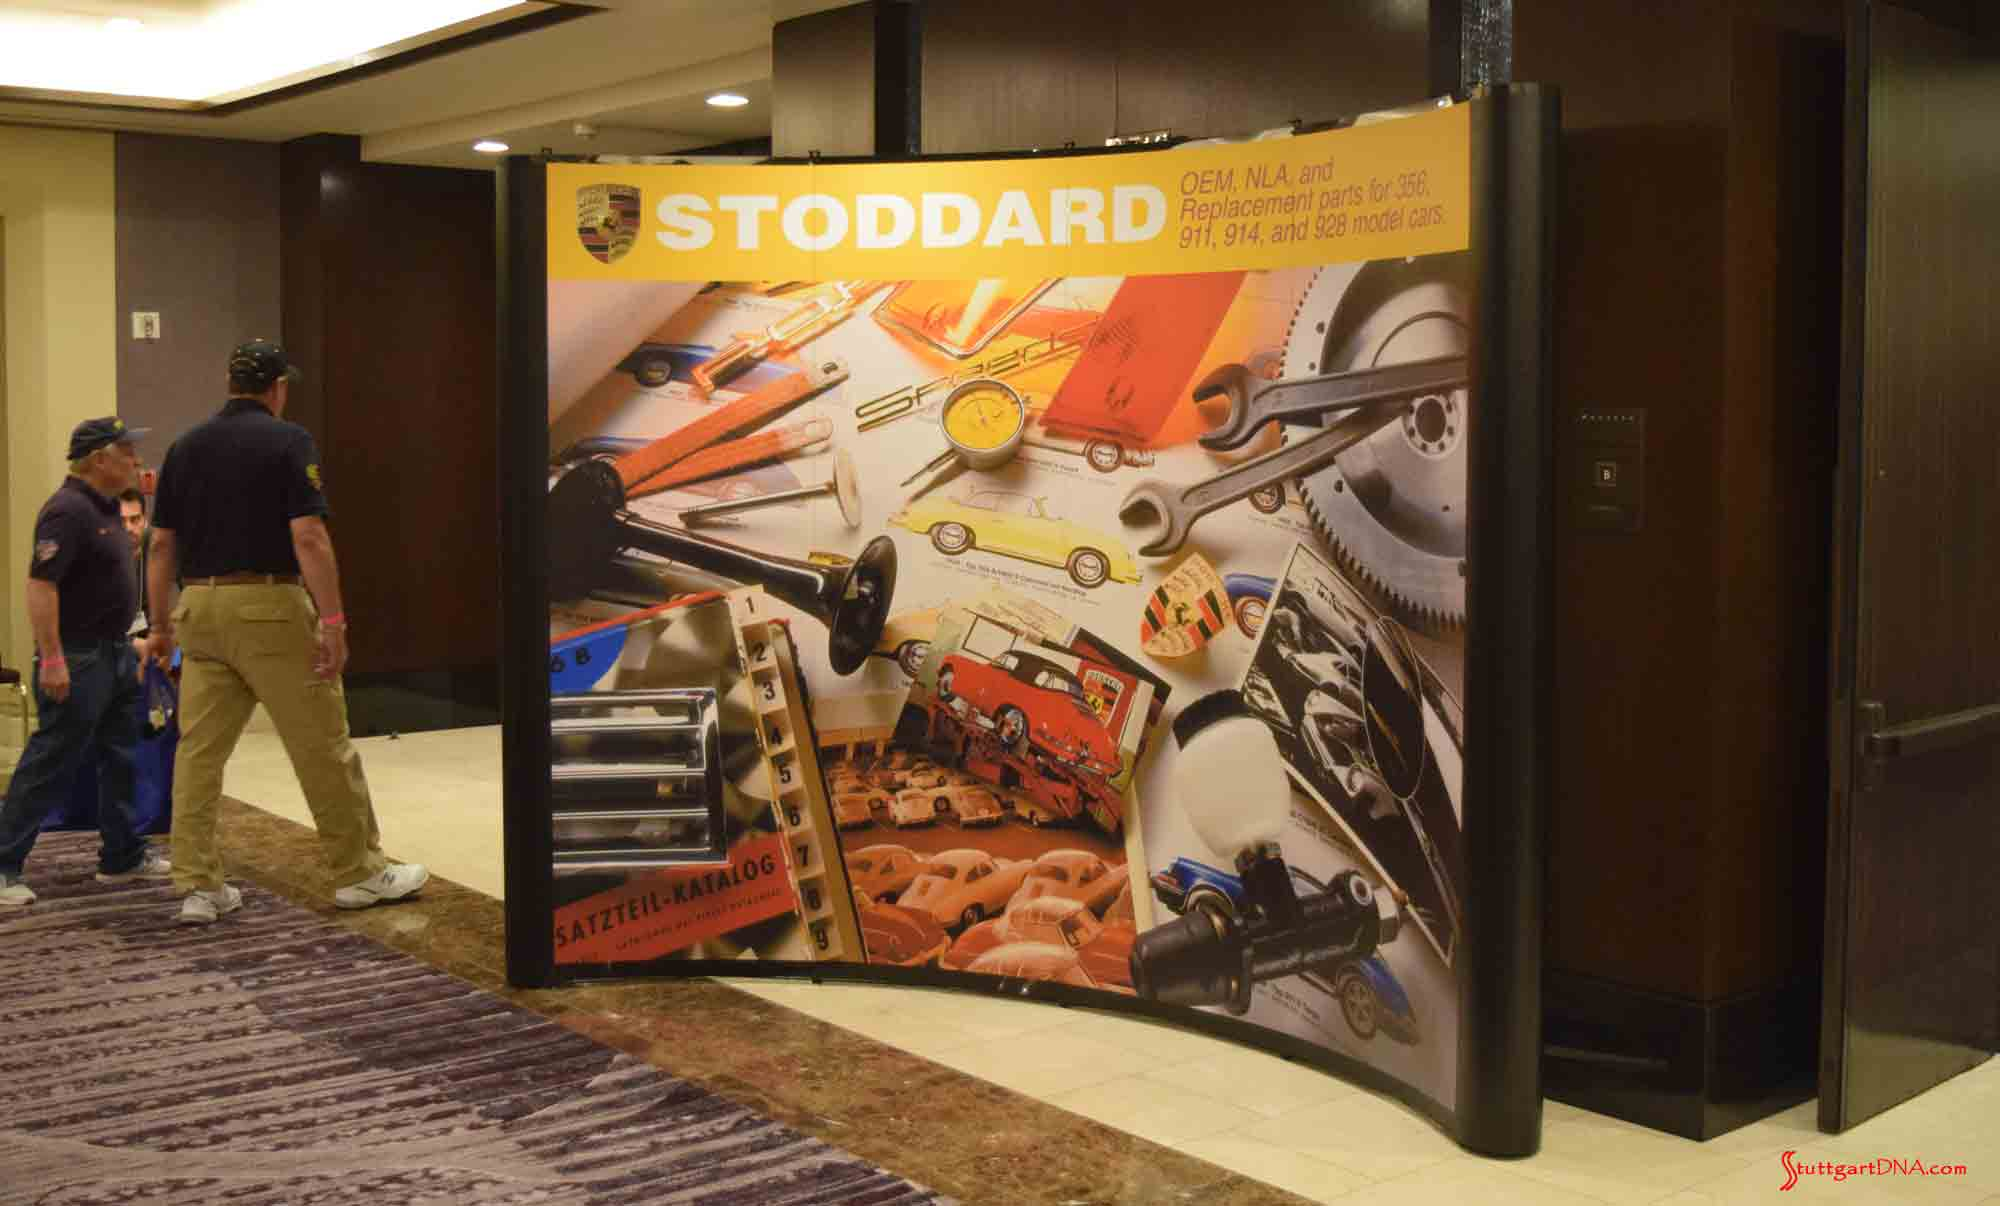 2017 Porsche L.A. Literature, Toy and Memorabilia Meet Weekend: Pictured here is Stoddard signage in lobby announcing its new stewardship of the 2017 Porsche L.A. Lit Meet. Credit: StuttgartDNA